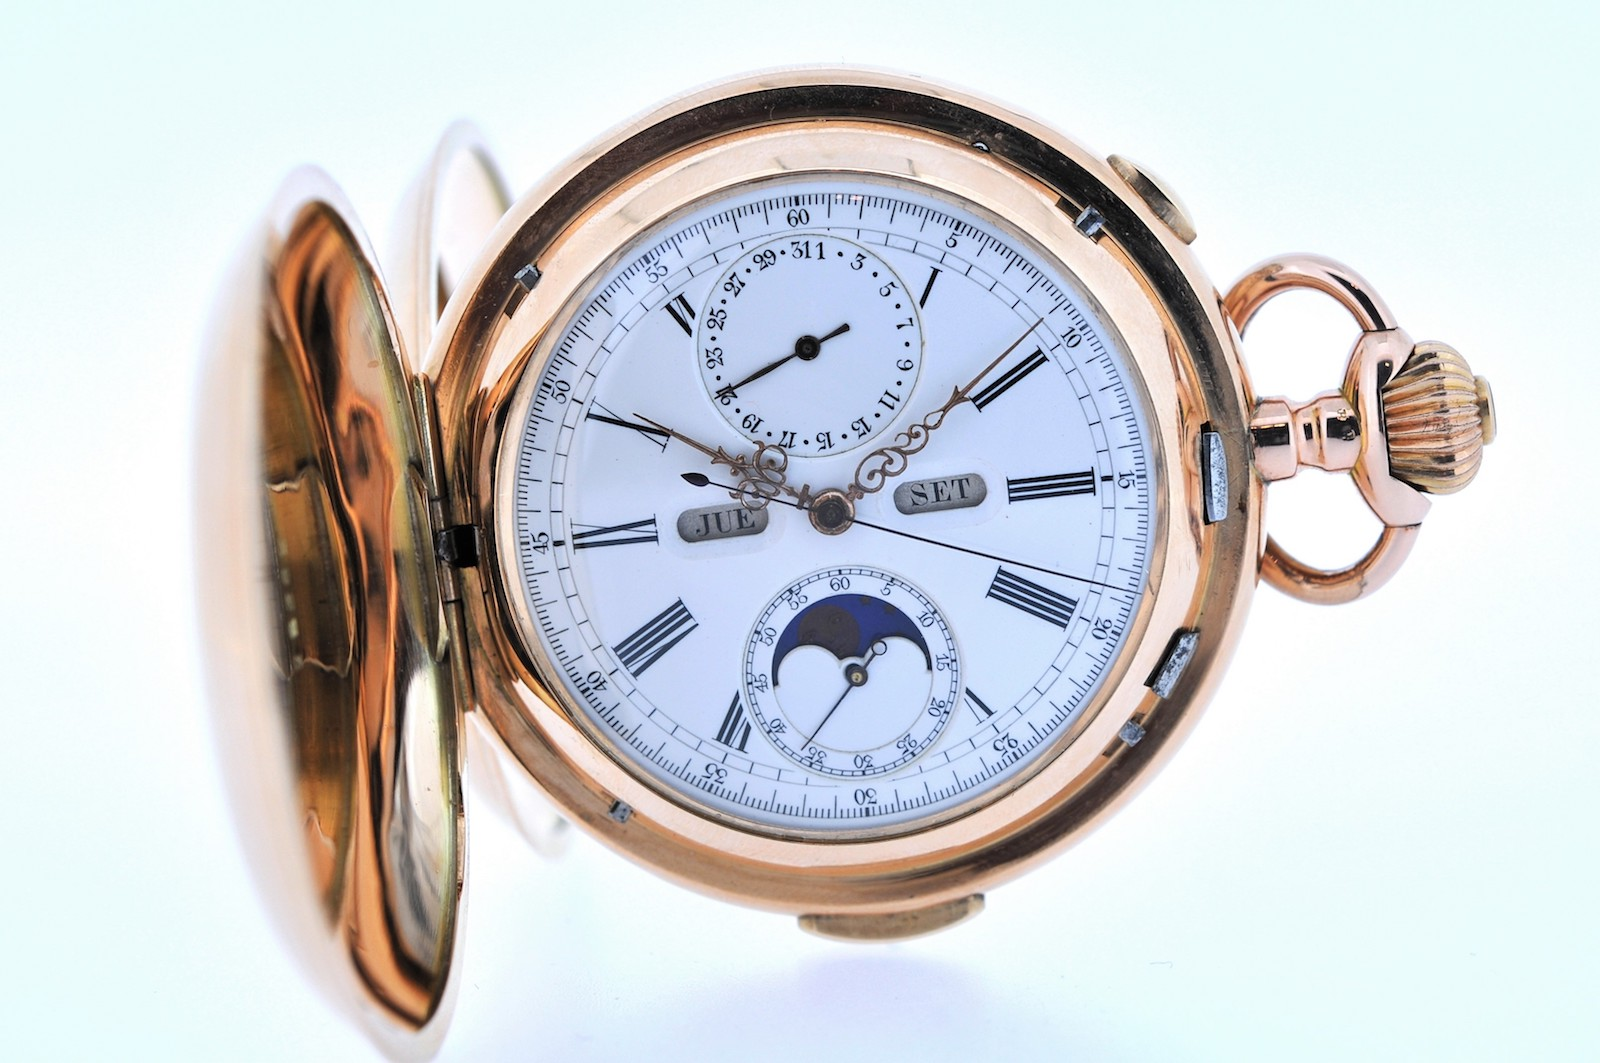 #27 Minute Repeating Watch | Minutenrepetierer Image